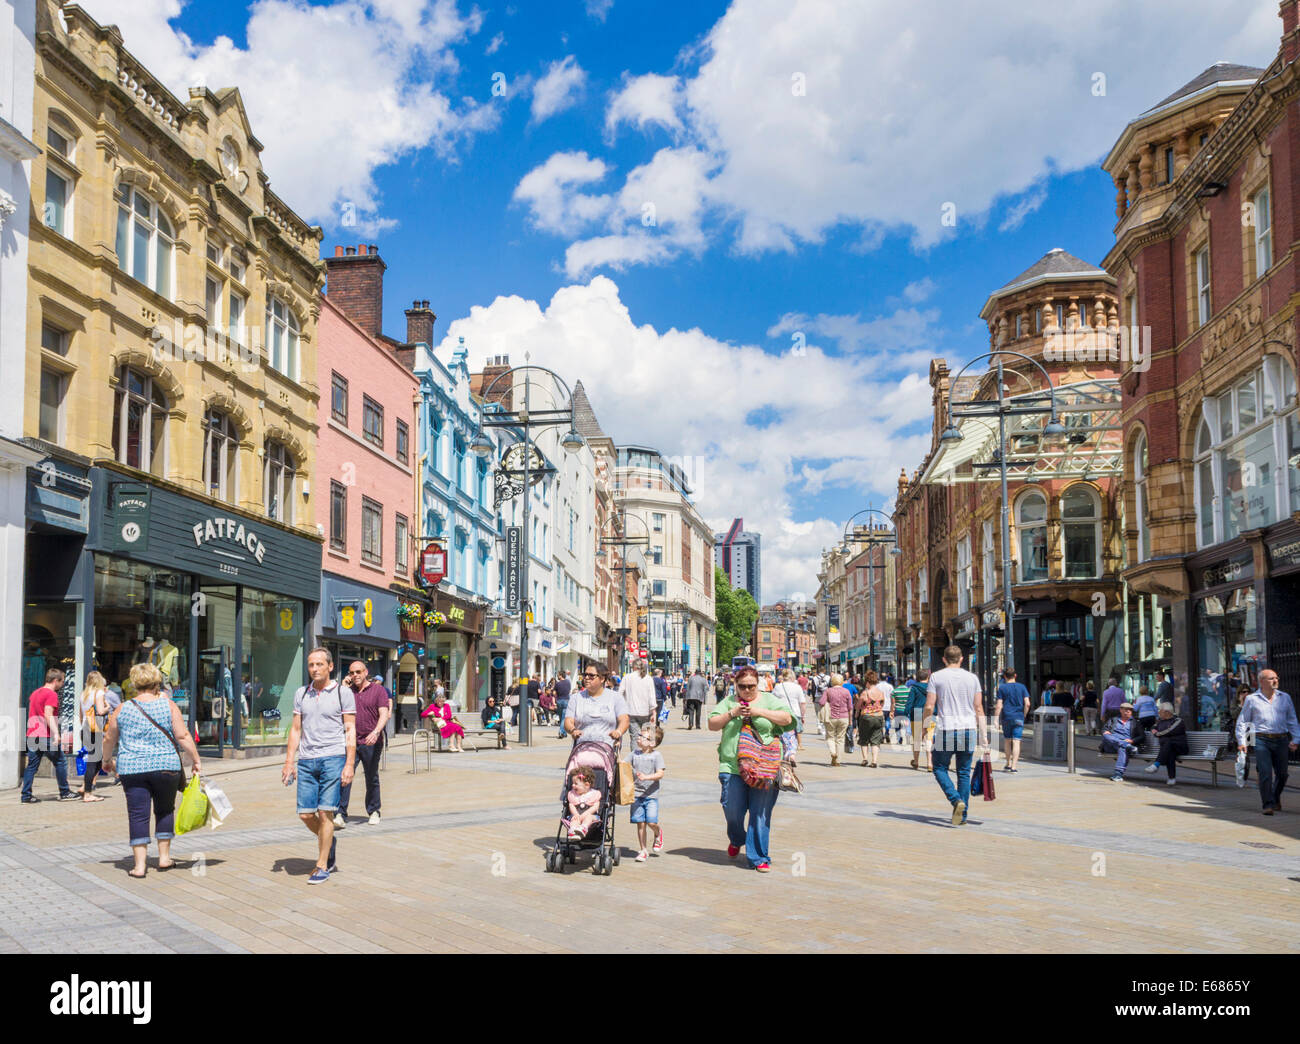 Briggate Shopping Street in Leeds City Centre Leeds West Yorkshire England UK GB  Europe - Stock Image